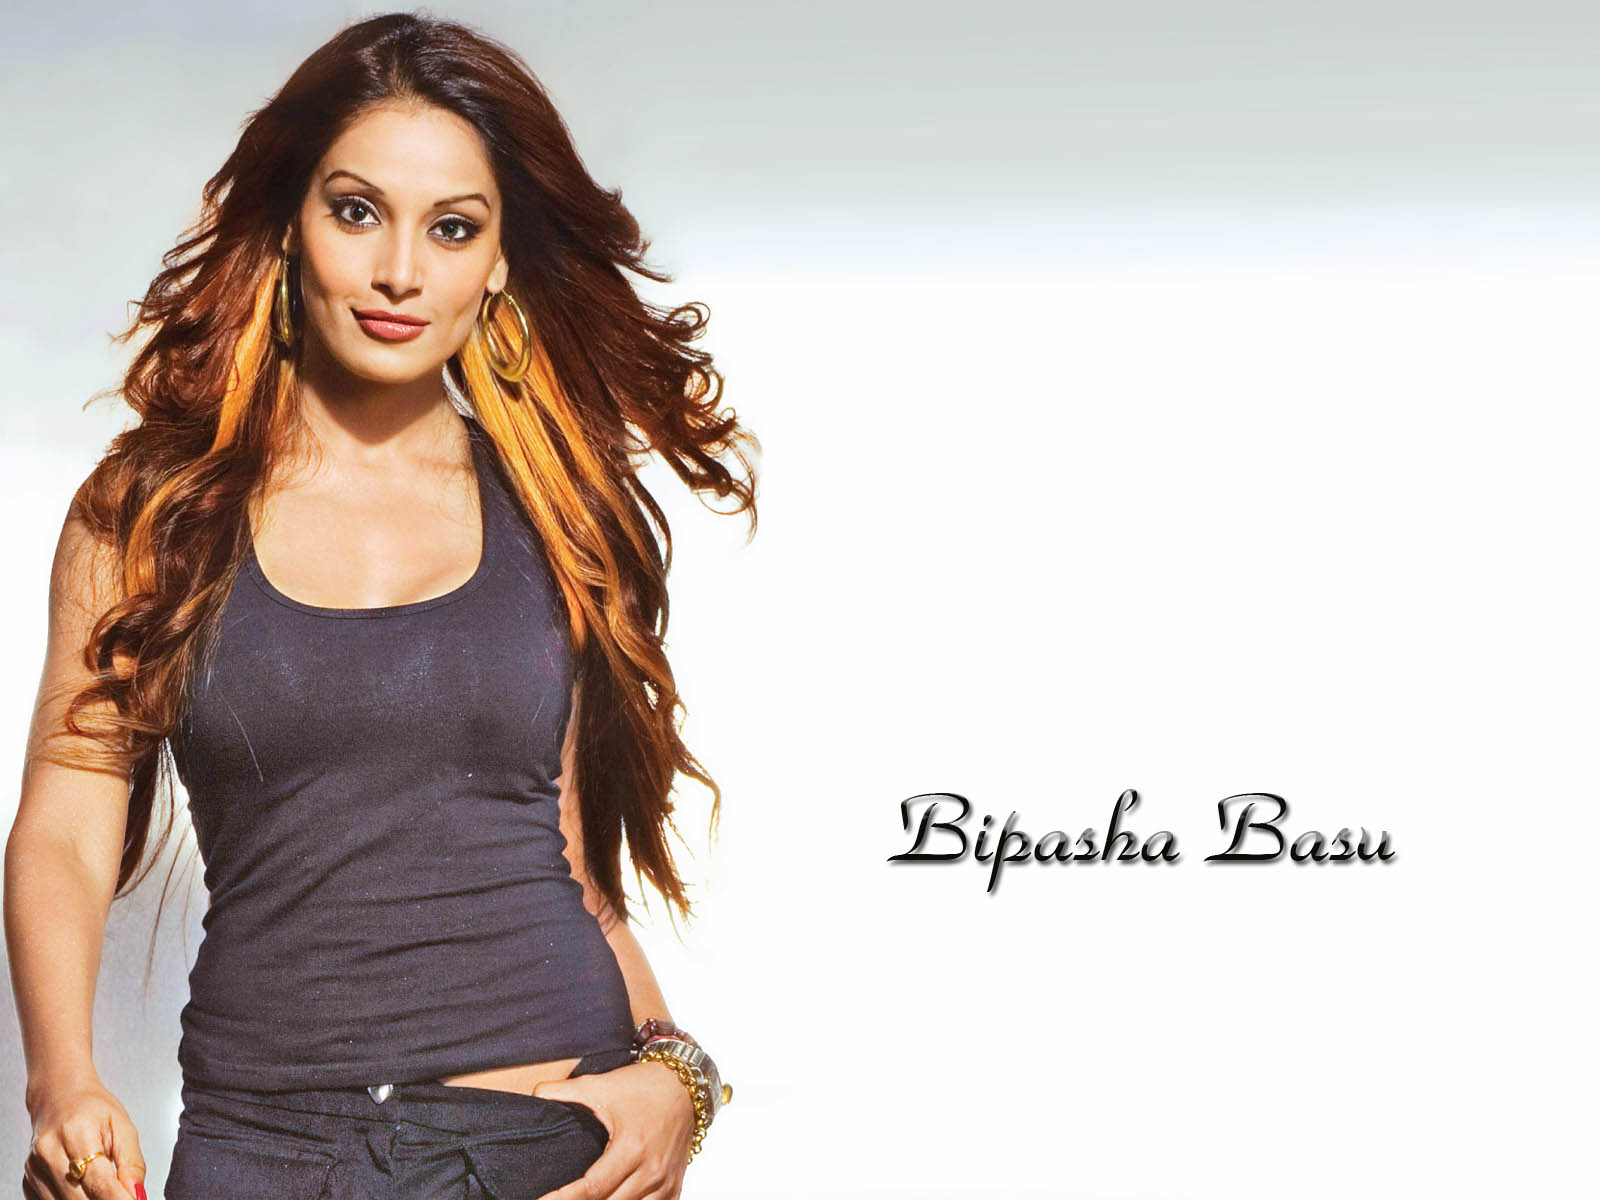 cute bipasha basu stylish look download laptop free background photos